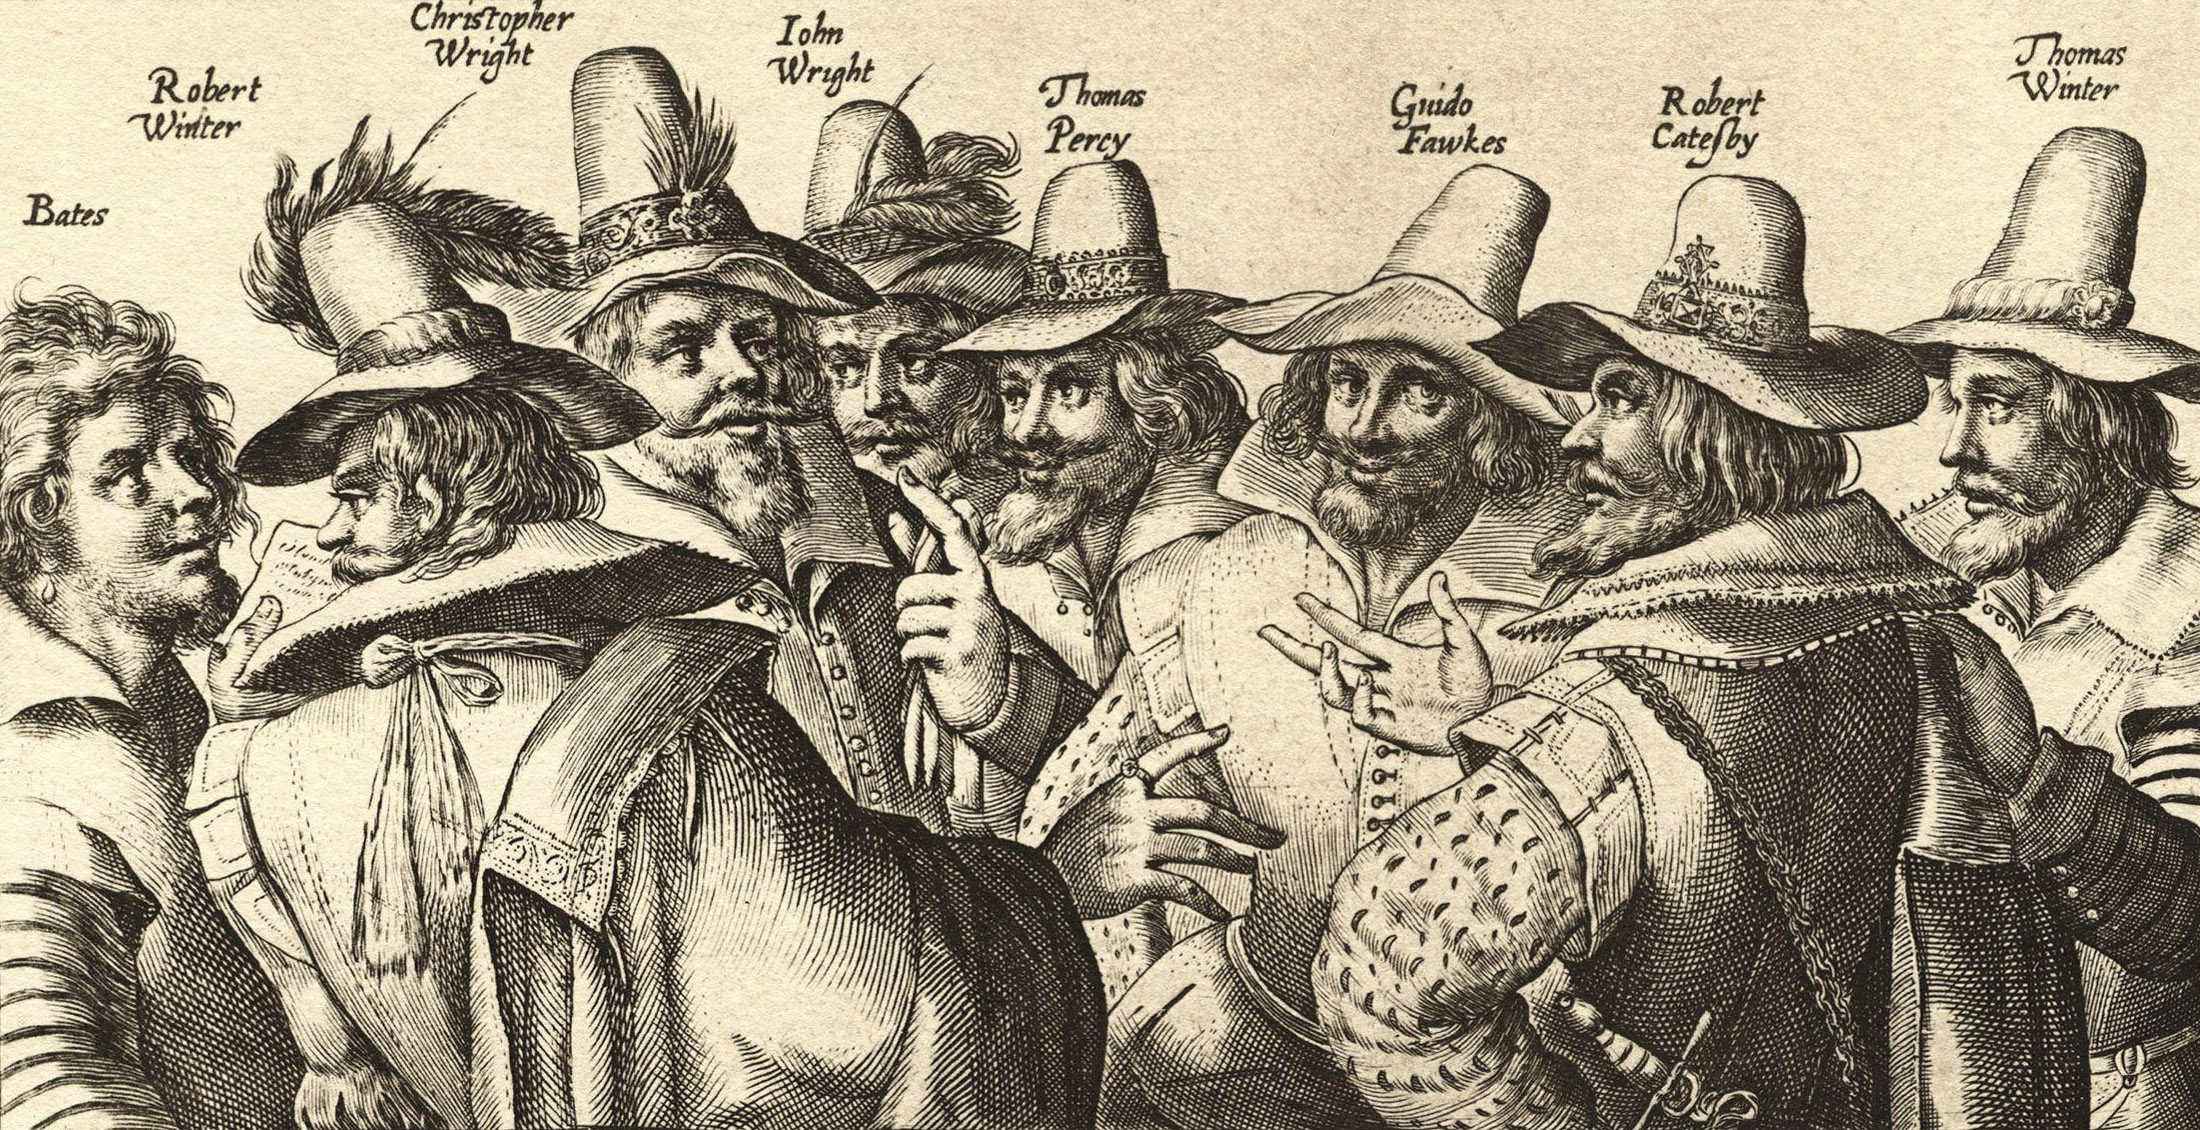 Guy Fawkes Night - Gunpowder plot conspirators